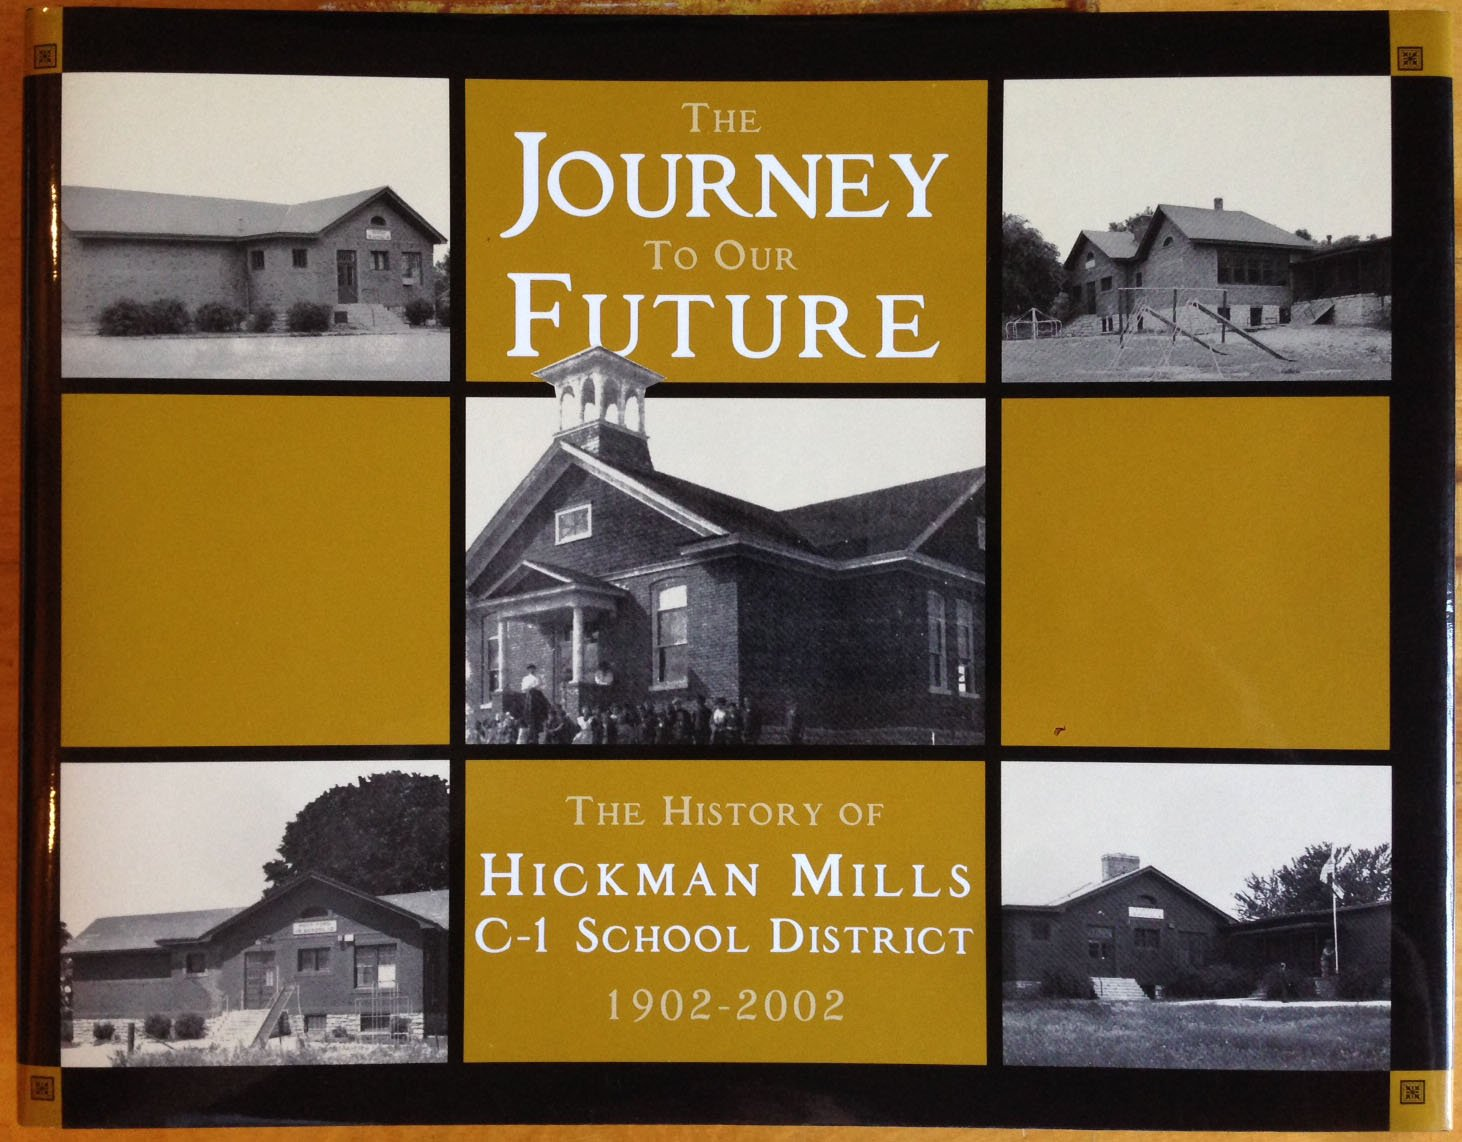 The journey to our future: The history of Hickman Mills C-1 school district 1902-2002 ebook